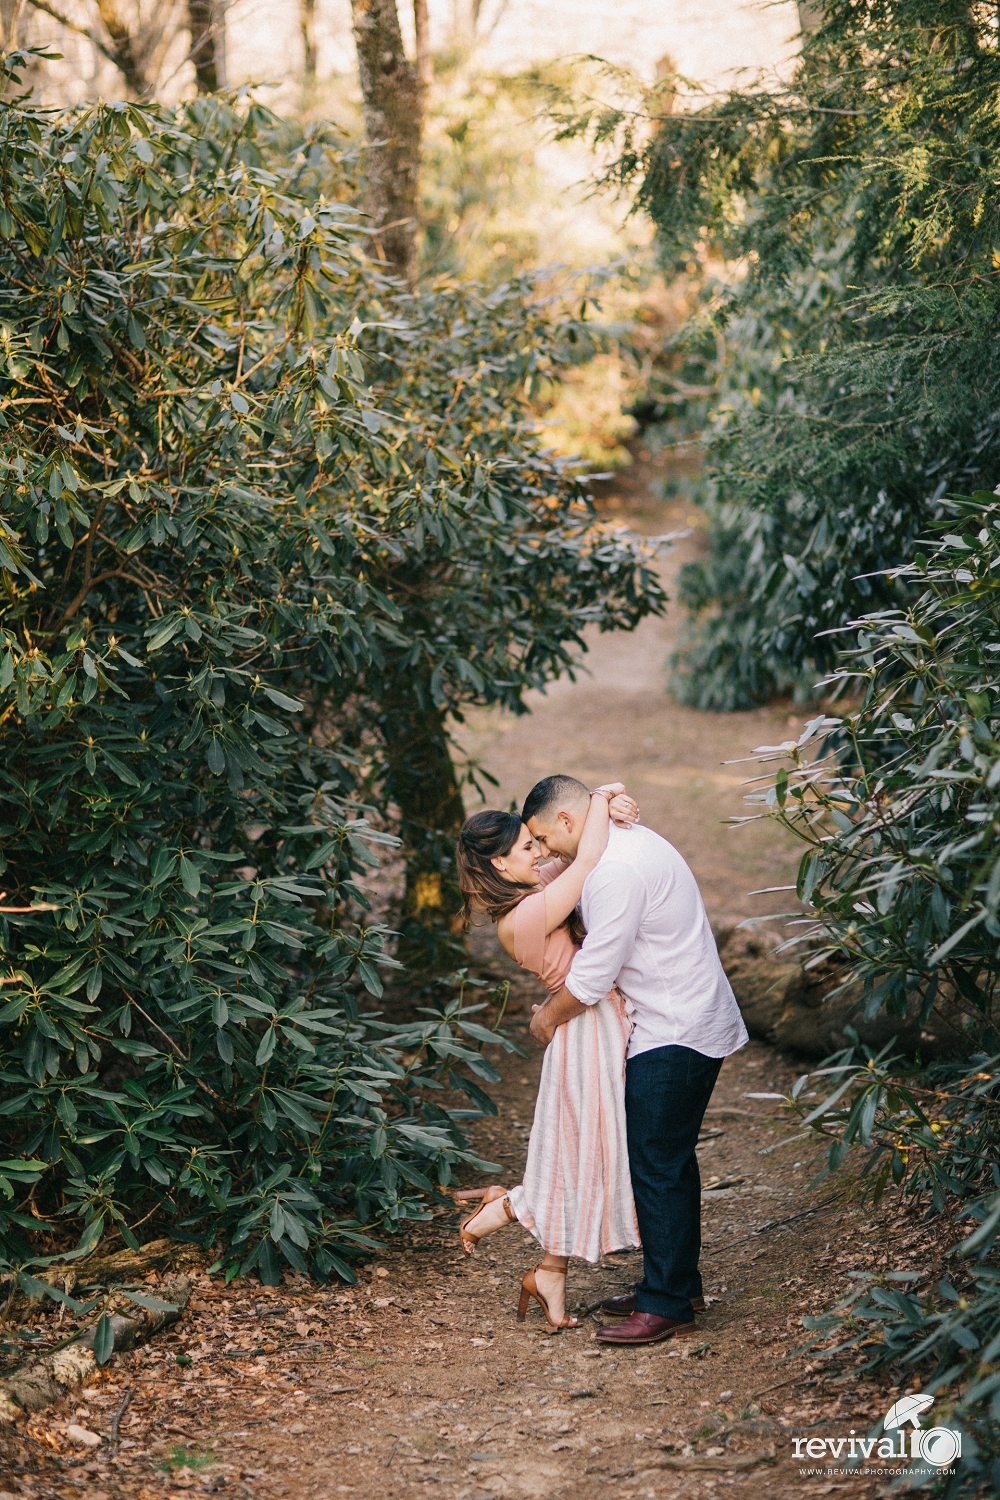 Karissa + Jacob's Blue Ridge Mountain Engagement Session by Revival Photography Blowing Rock Wedding Photographers www.revivalphotography.com